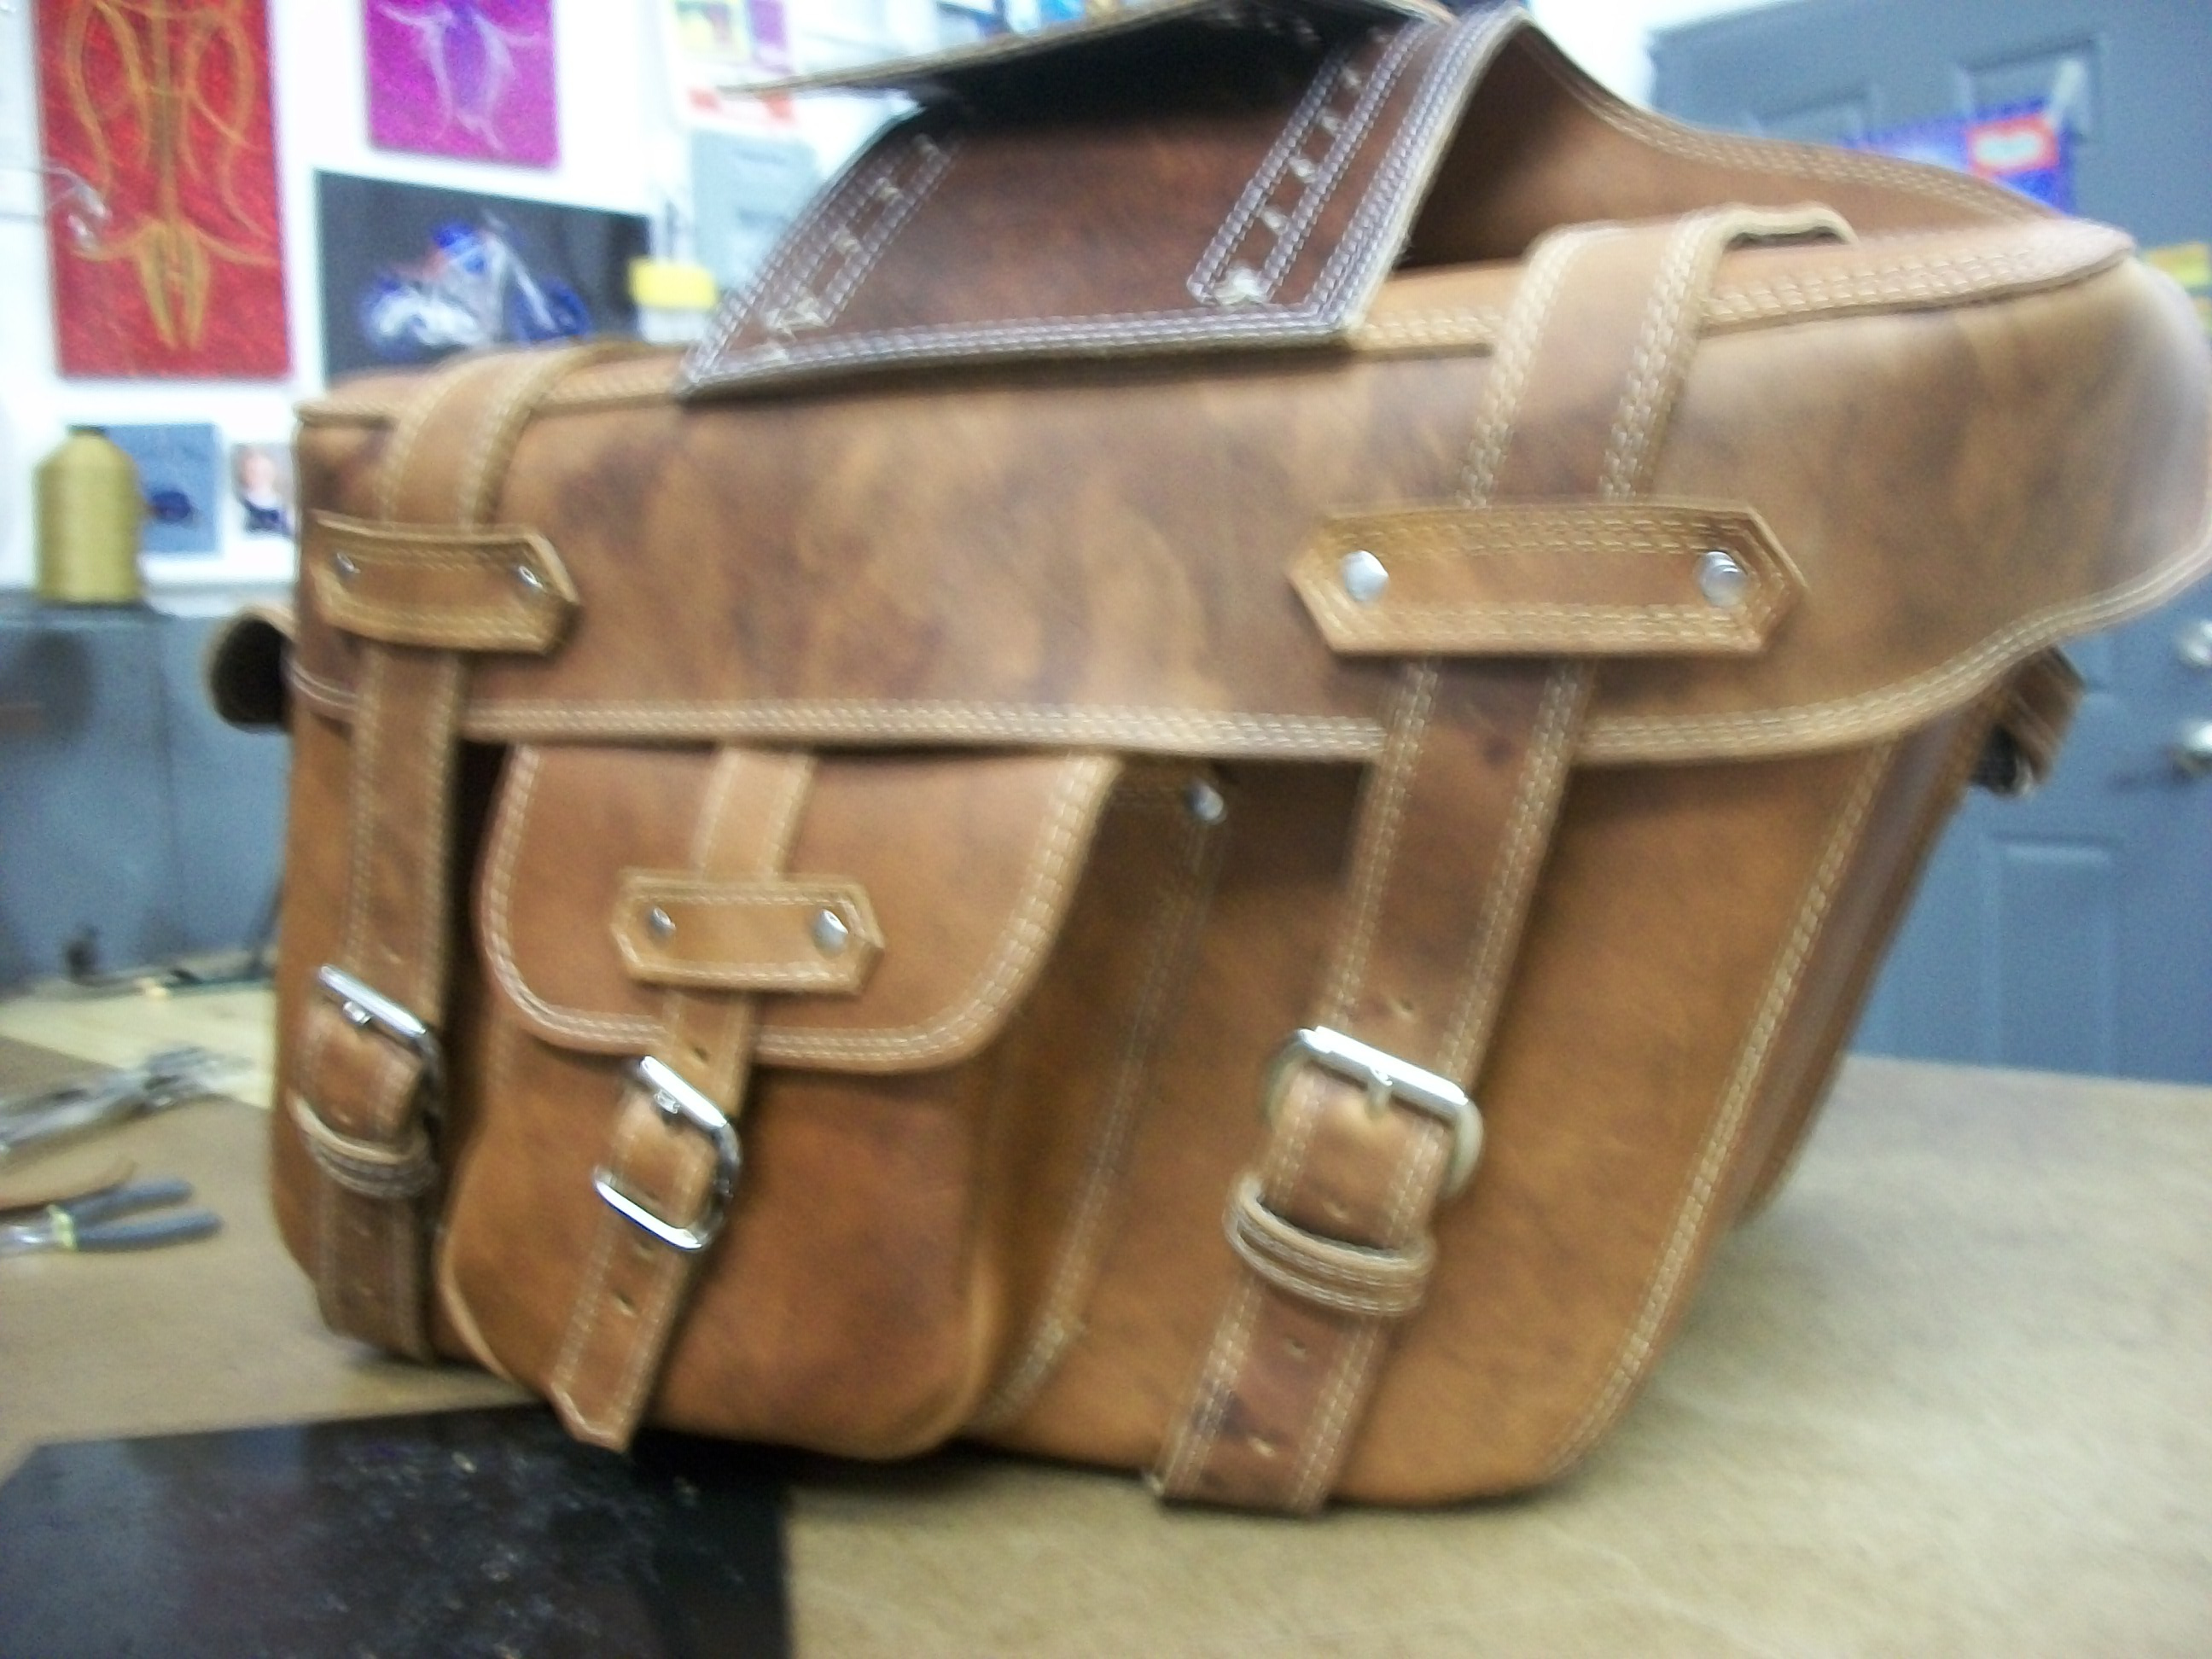 Deluxe leather harley bags